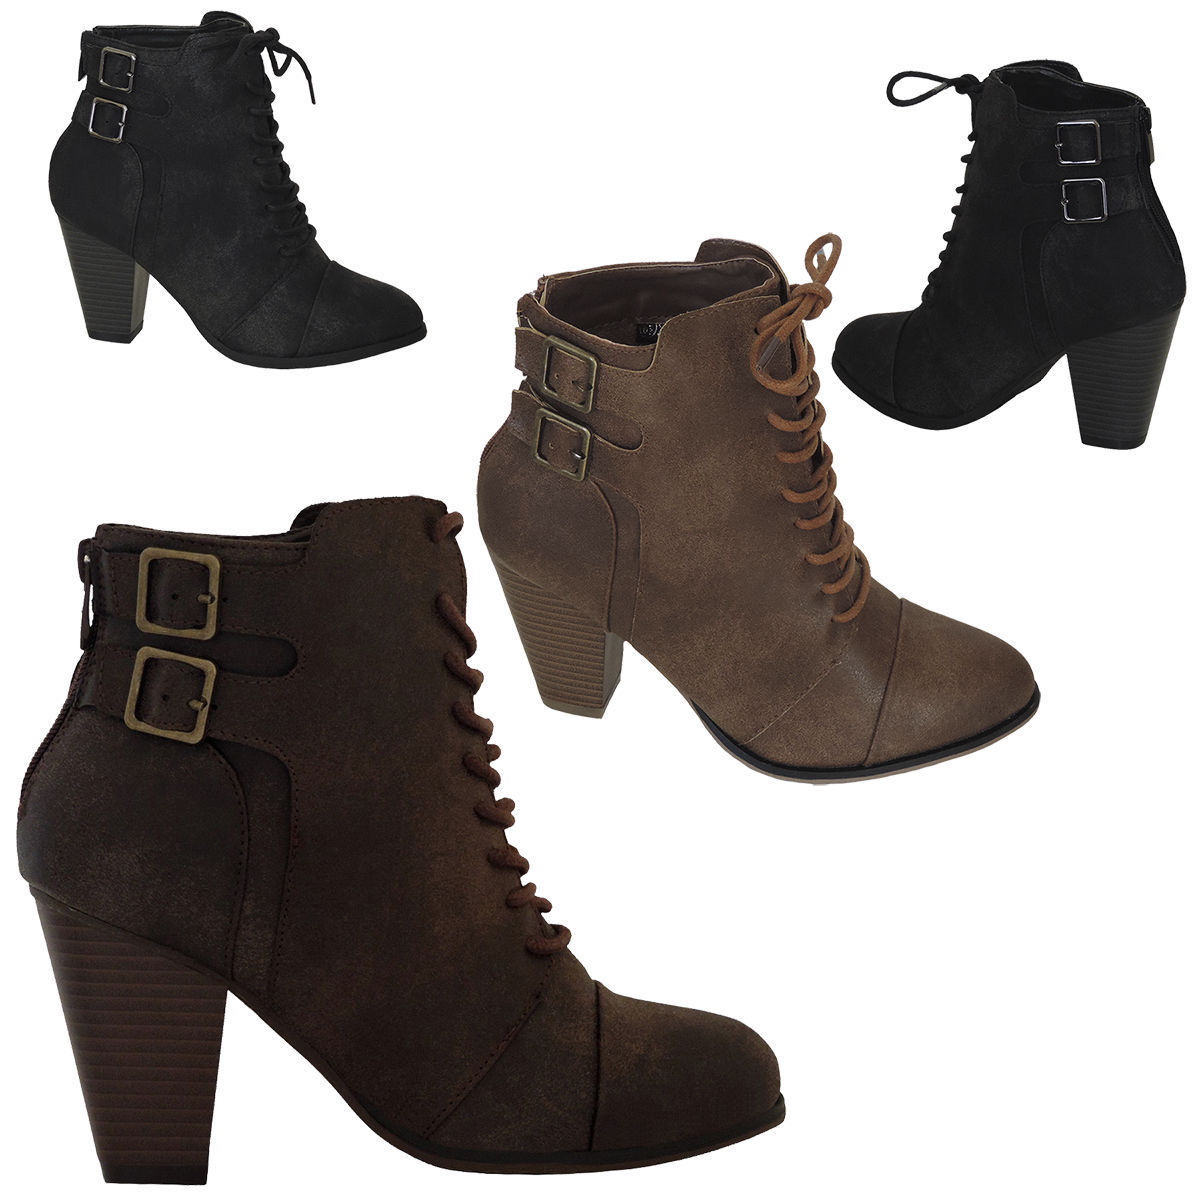 7e8610ae889e Womens High Heels Booties Ankle Boots Lace Up fashion low Shoes Wedge Size  Pumps